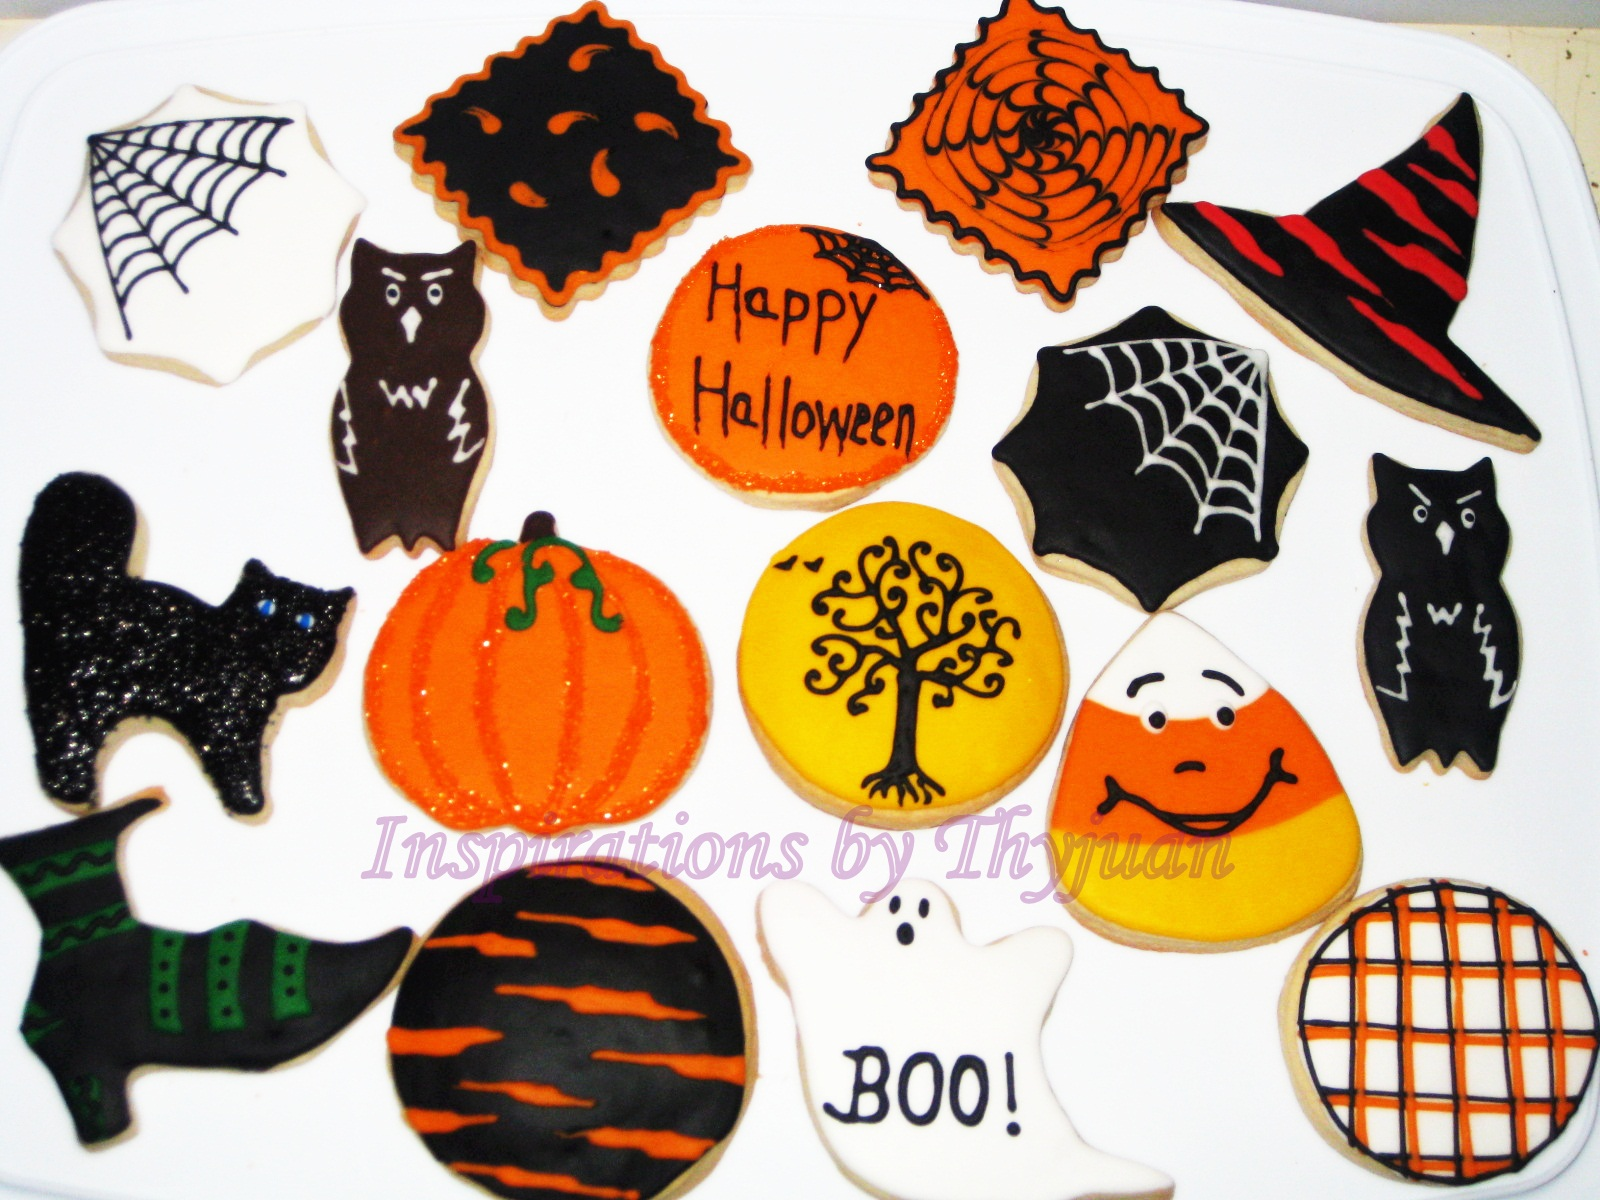 Inspirations by Thyjuan LLC.: Halloween Cookies